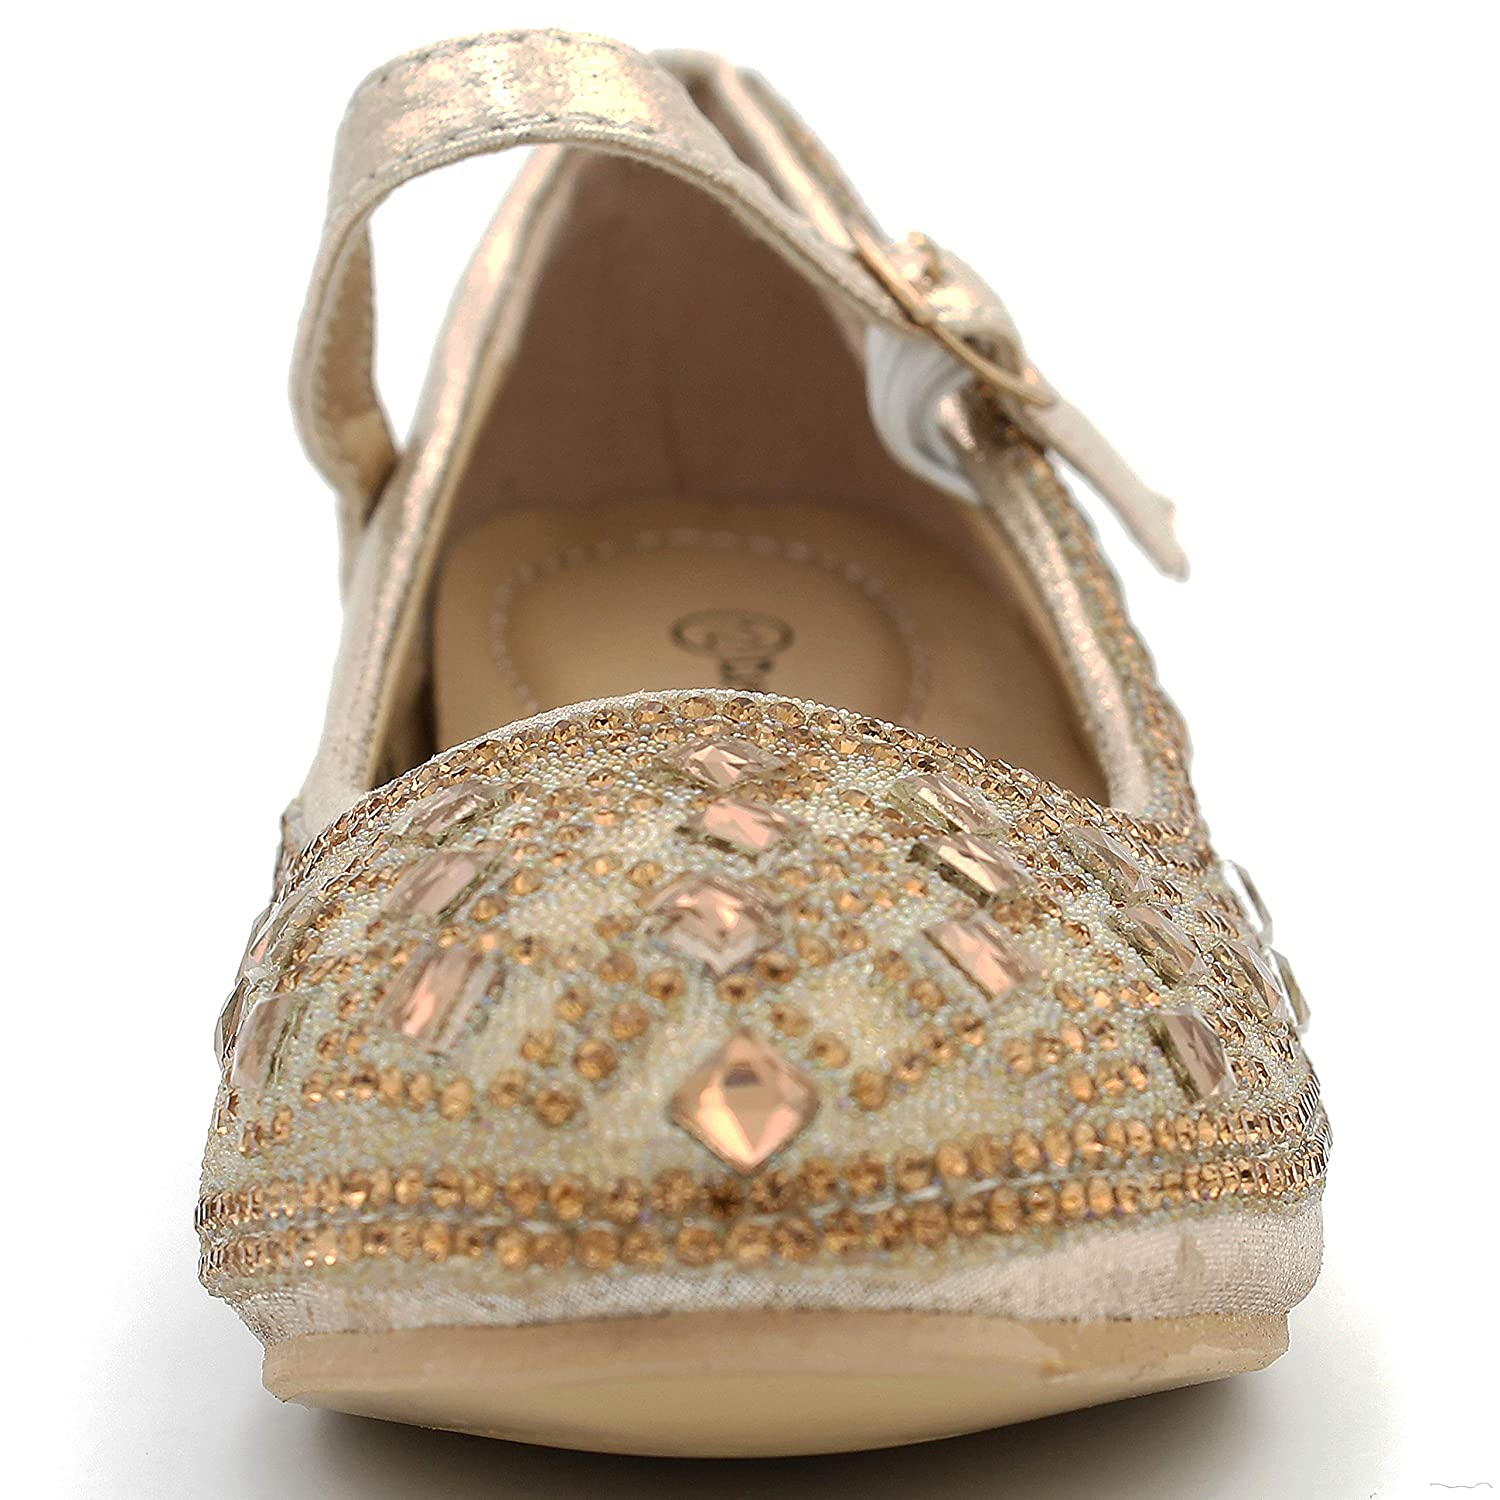 Girls Glitter Sparkling Dress Shoes Low Medium Heel Pumps Bow Mary Jane Pageant 786k